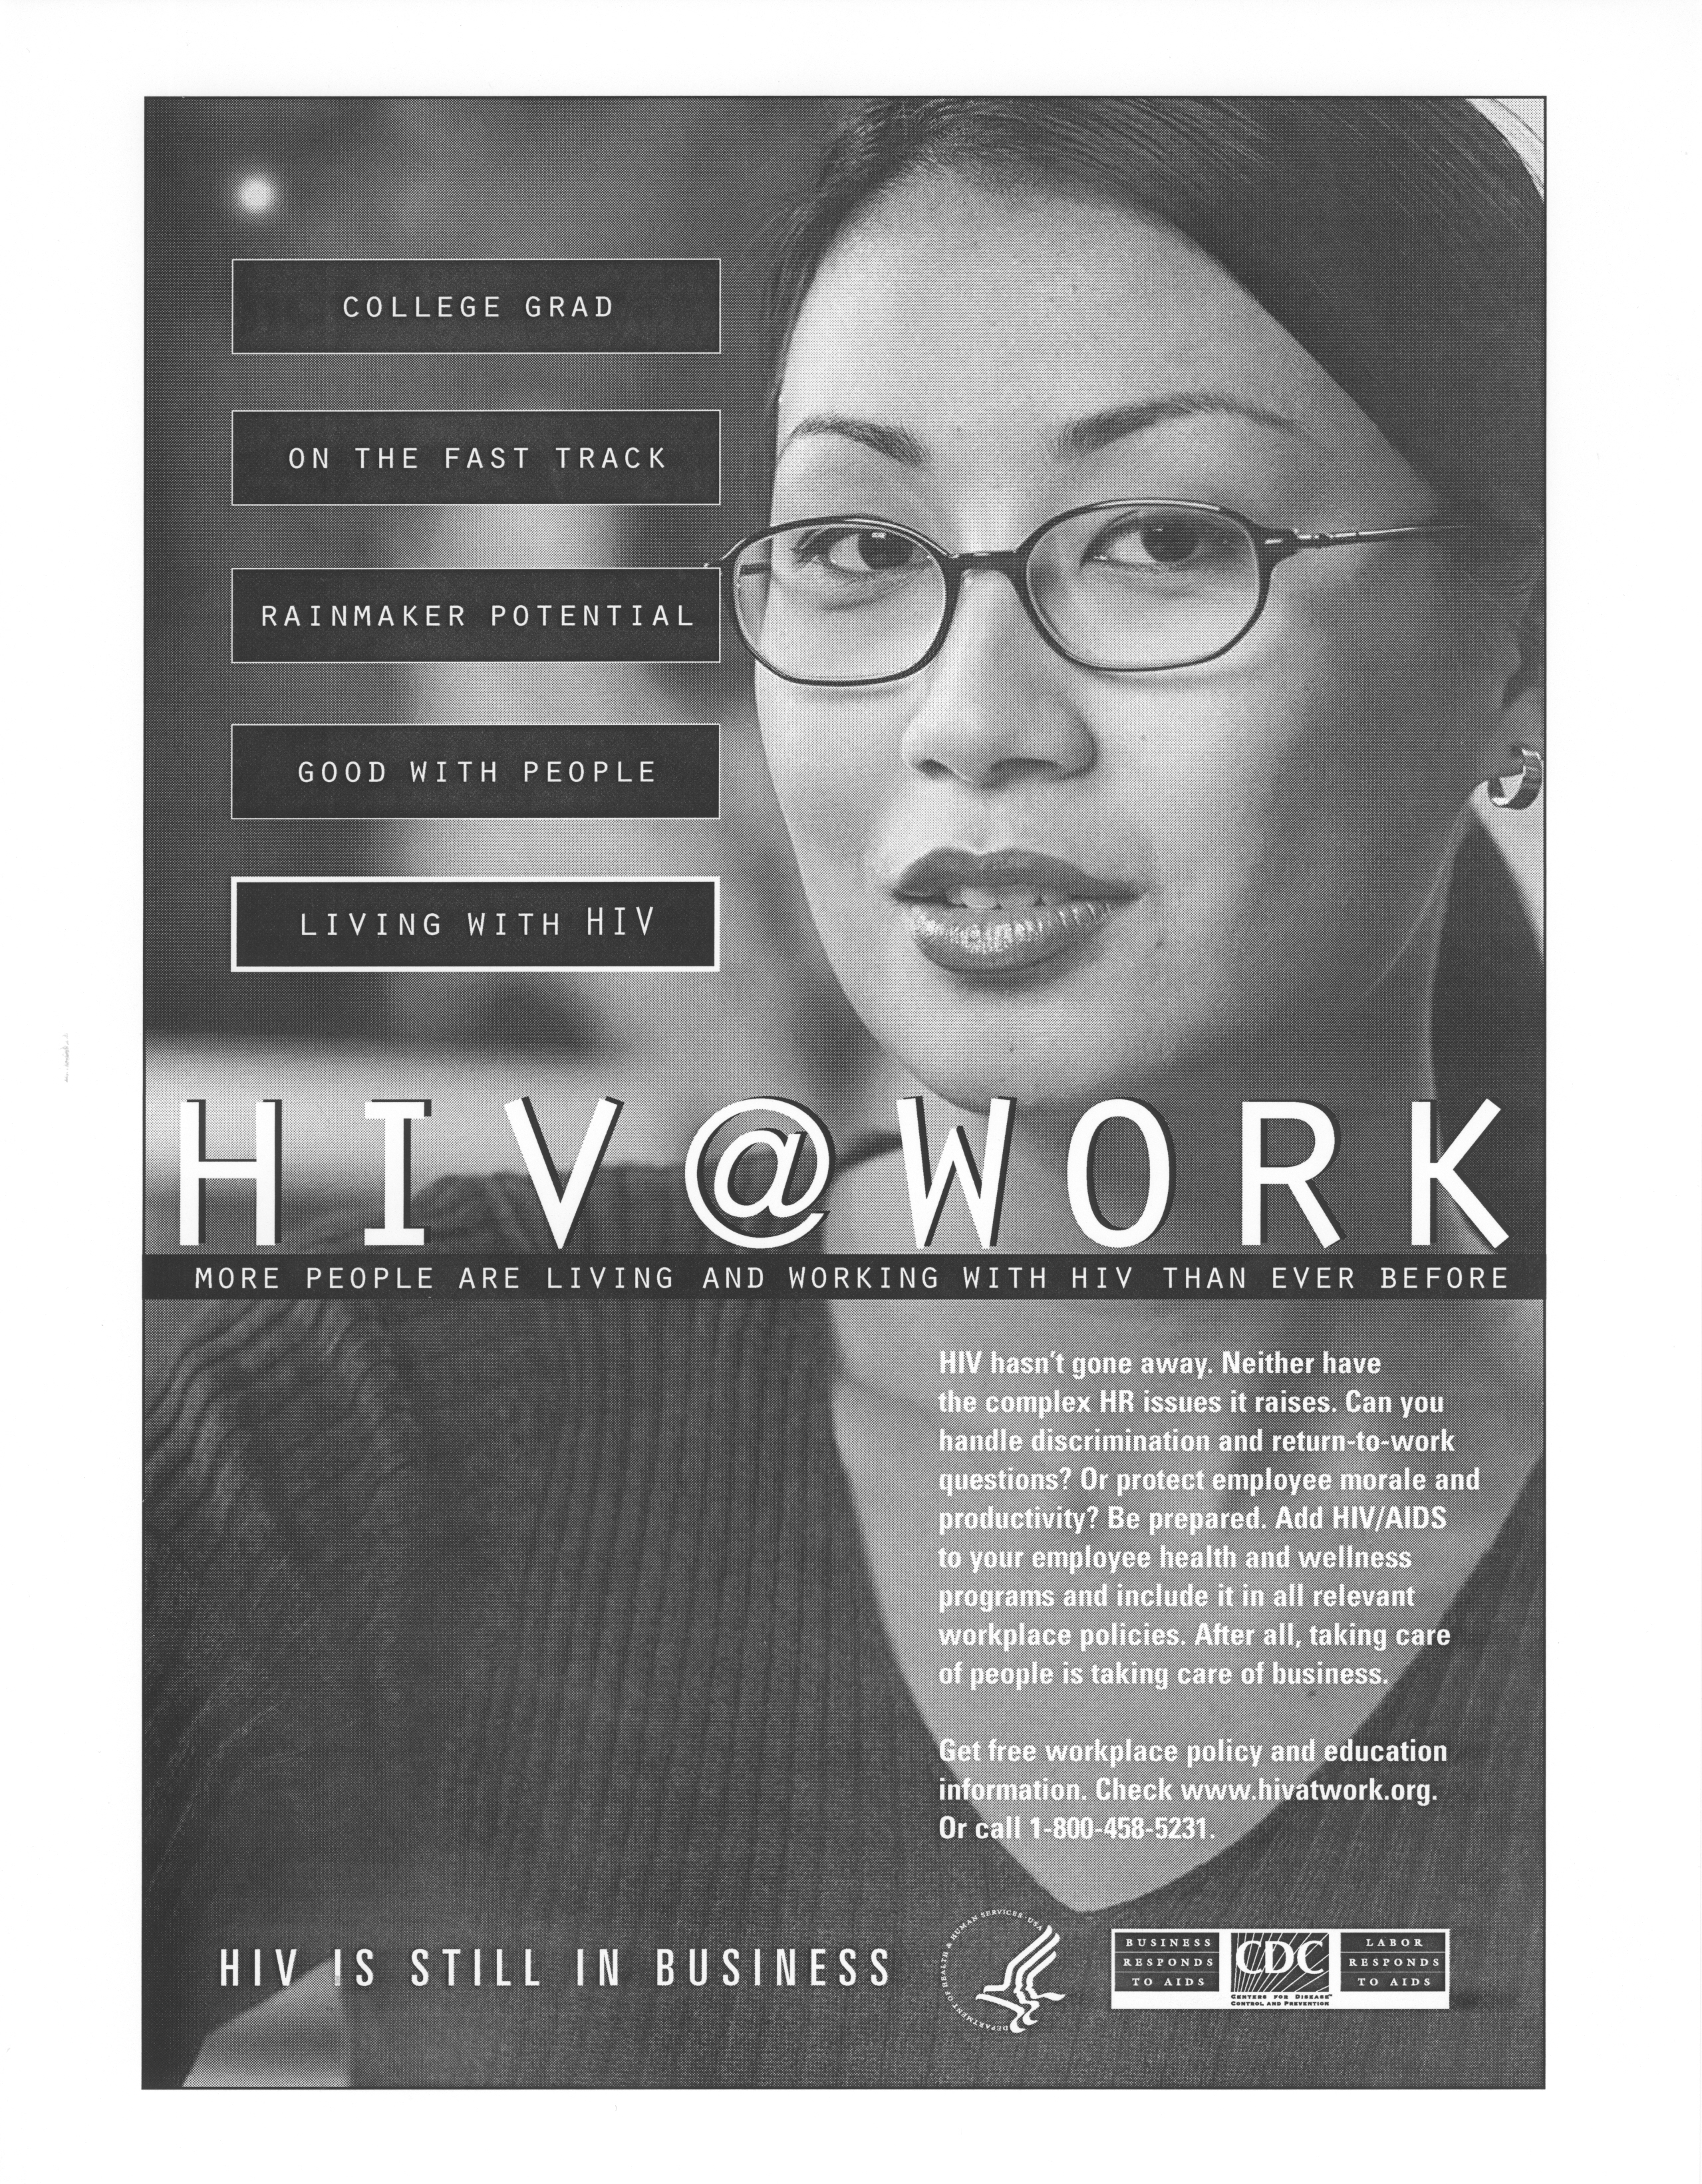 College grad on the fast track. Rainmaker potential. Good with people. Living with HIV. HIV@Work